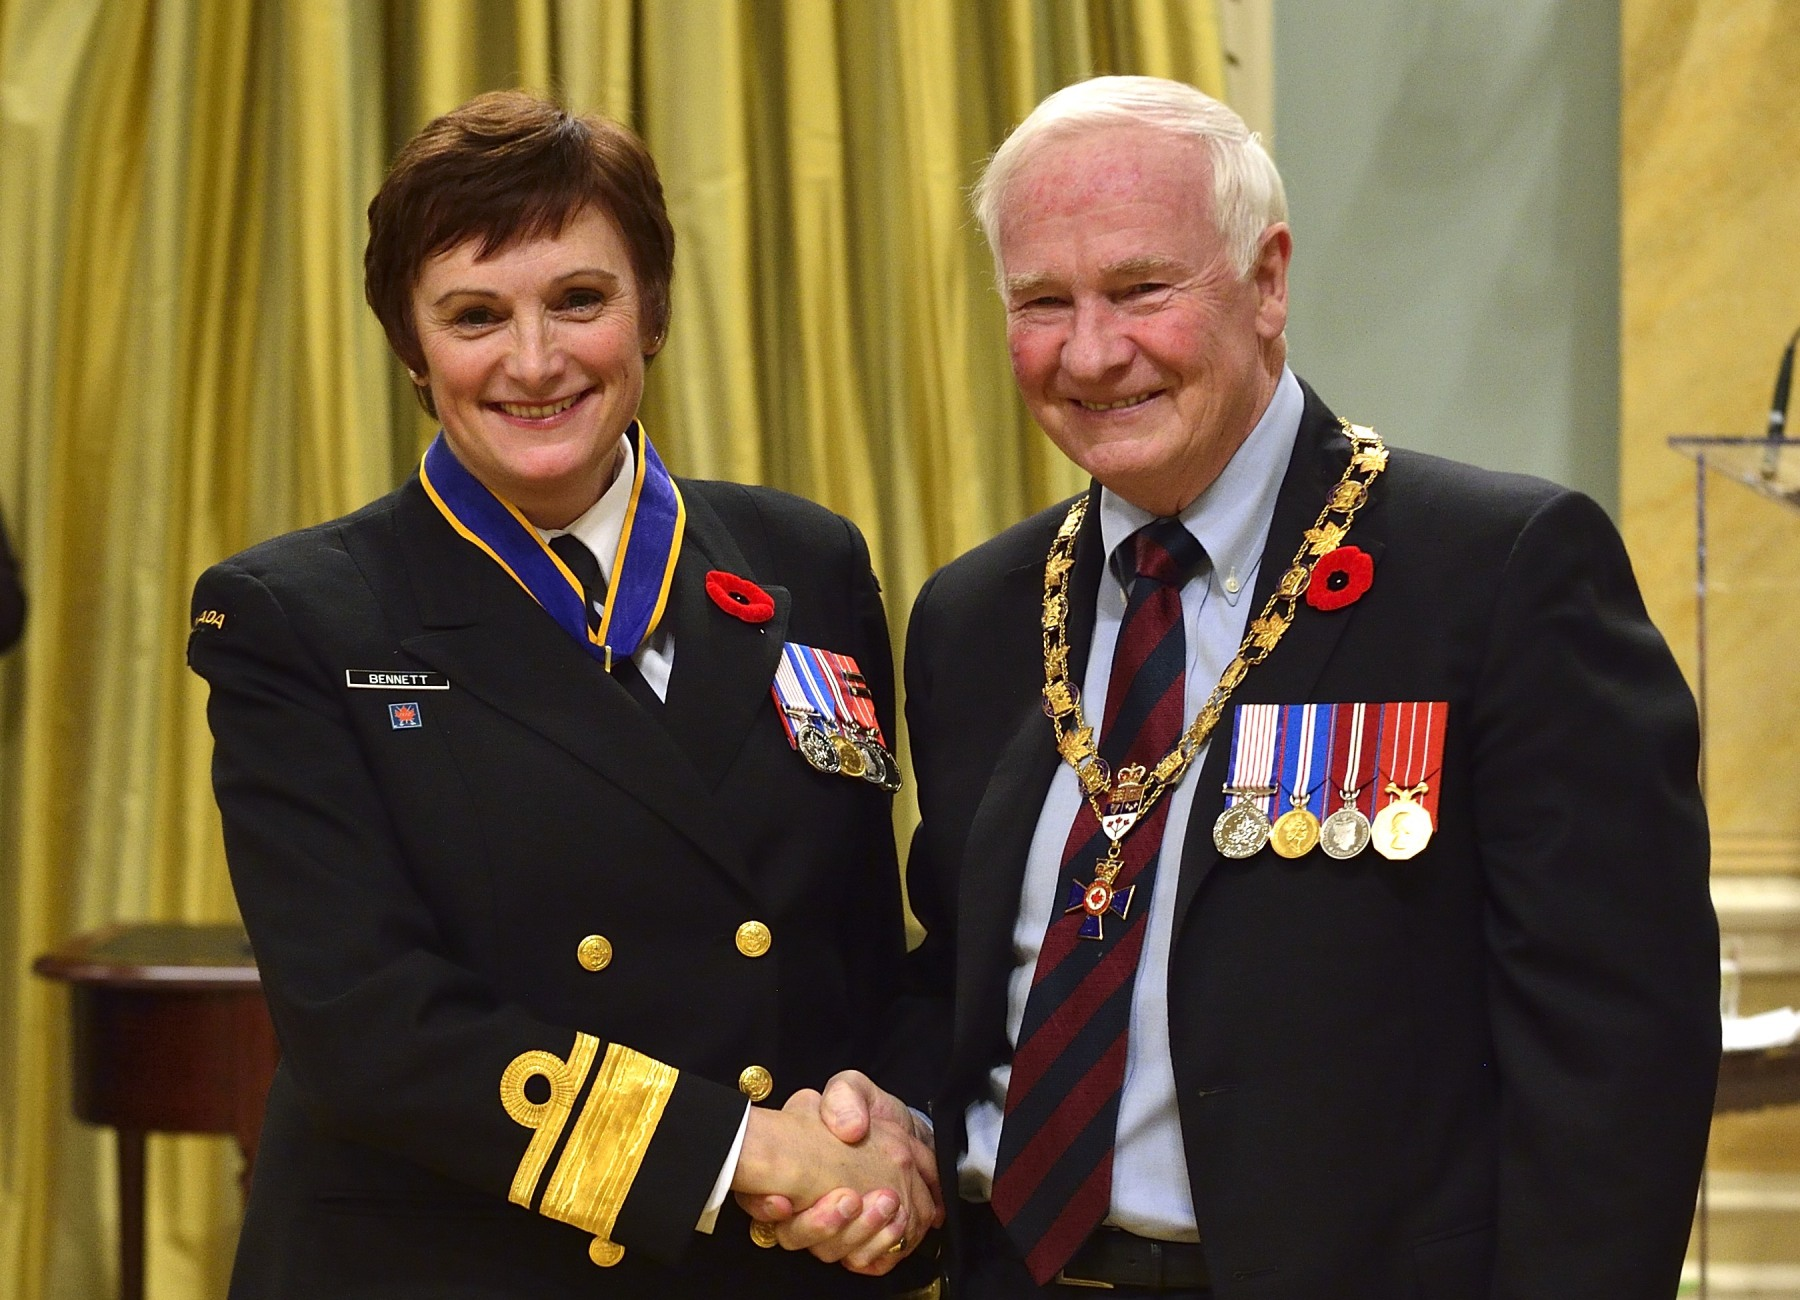 His Excellency presented the Order of Military Merit at the Commander level (C.M.M.) to Rear-Admiral Jennifer Bennett, C.M.M., C.D., Director General Reserves and Cadets, Ottawa, Ont. This is a promotion within the Order.